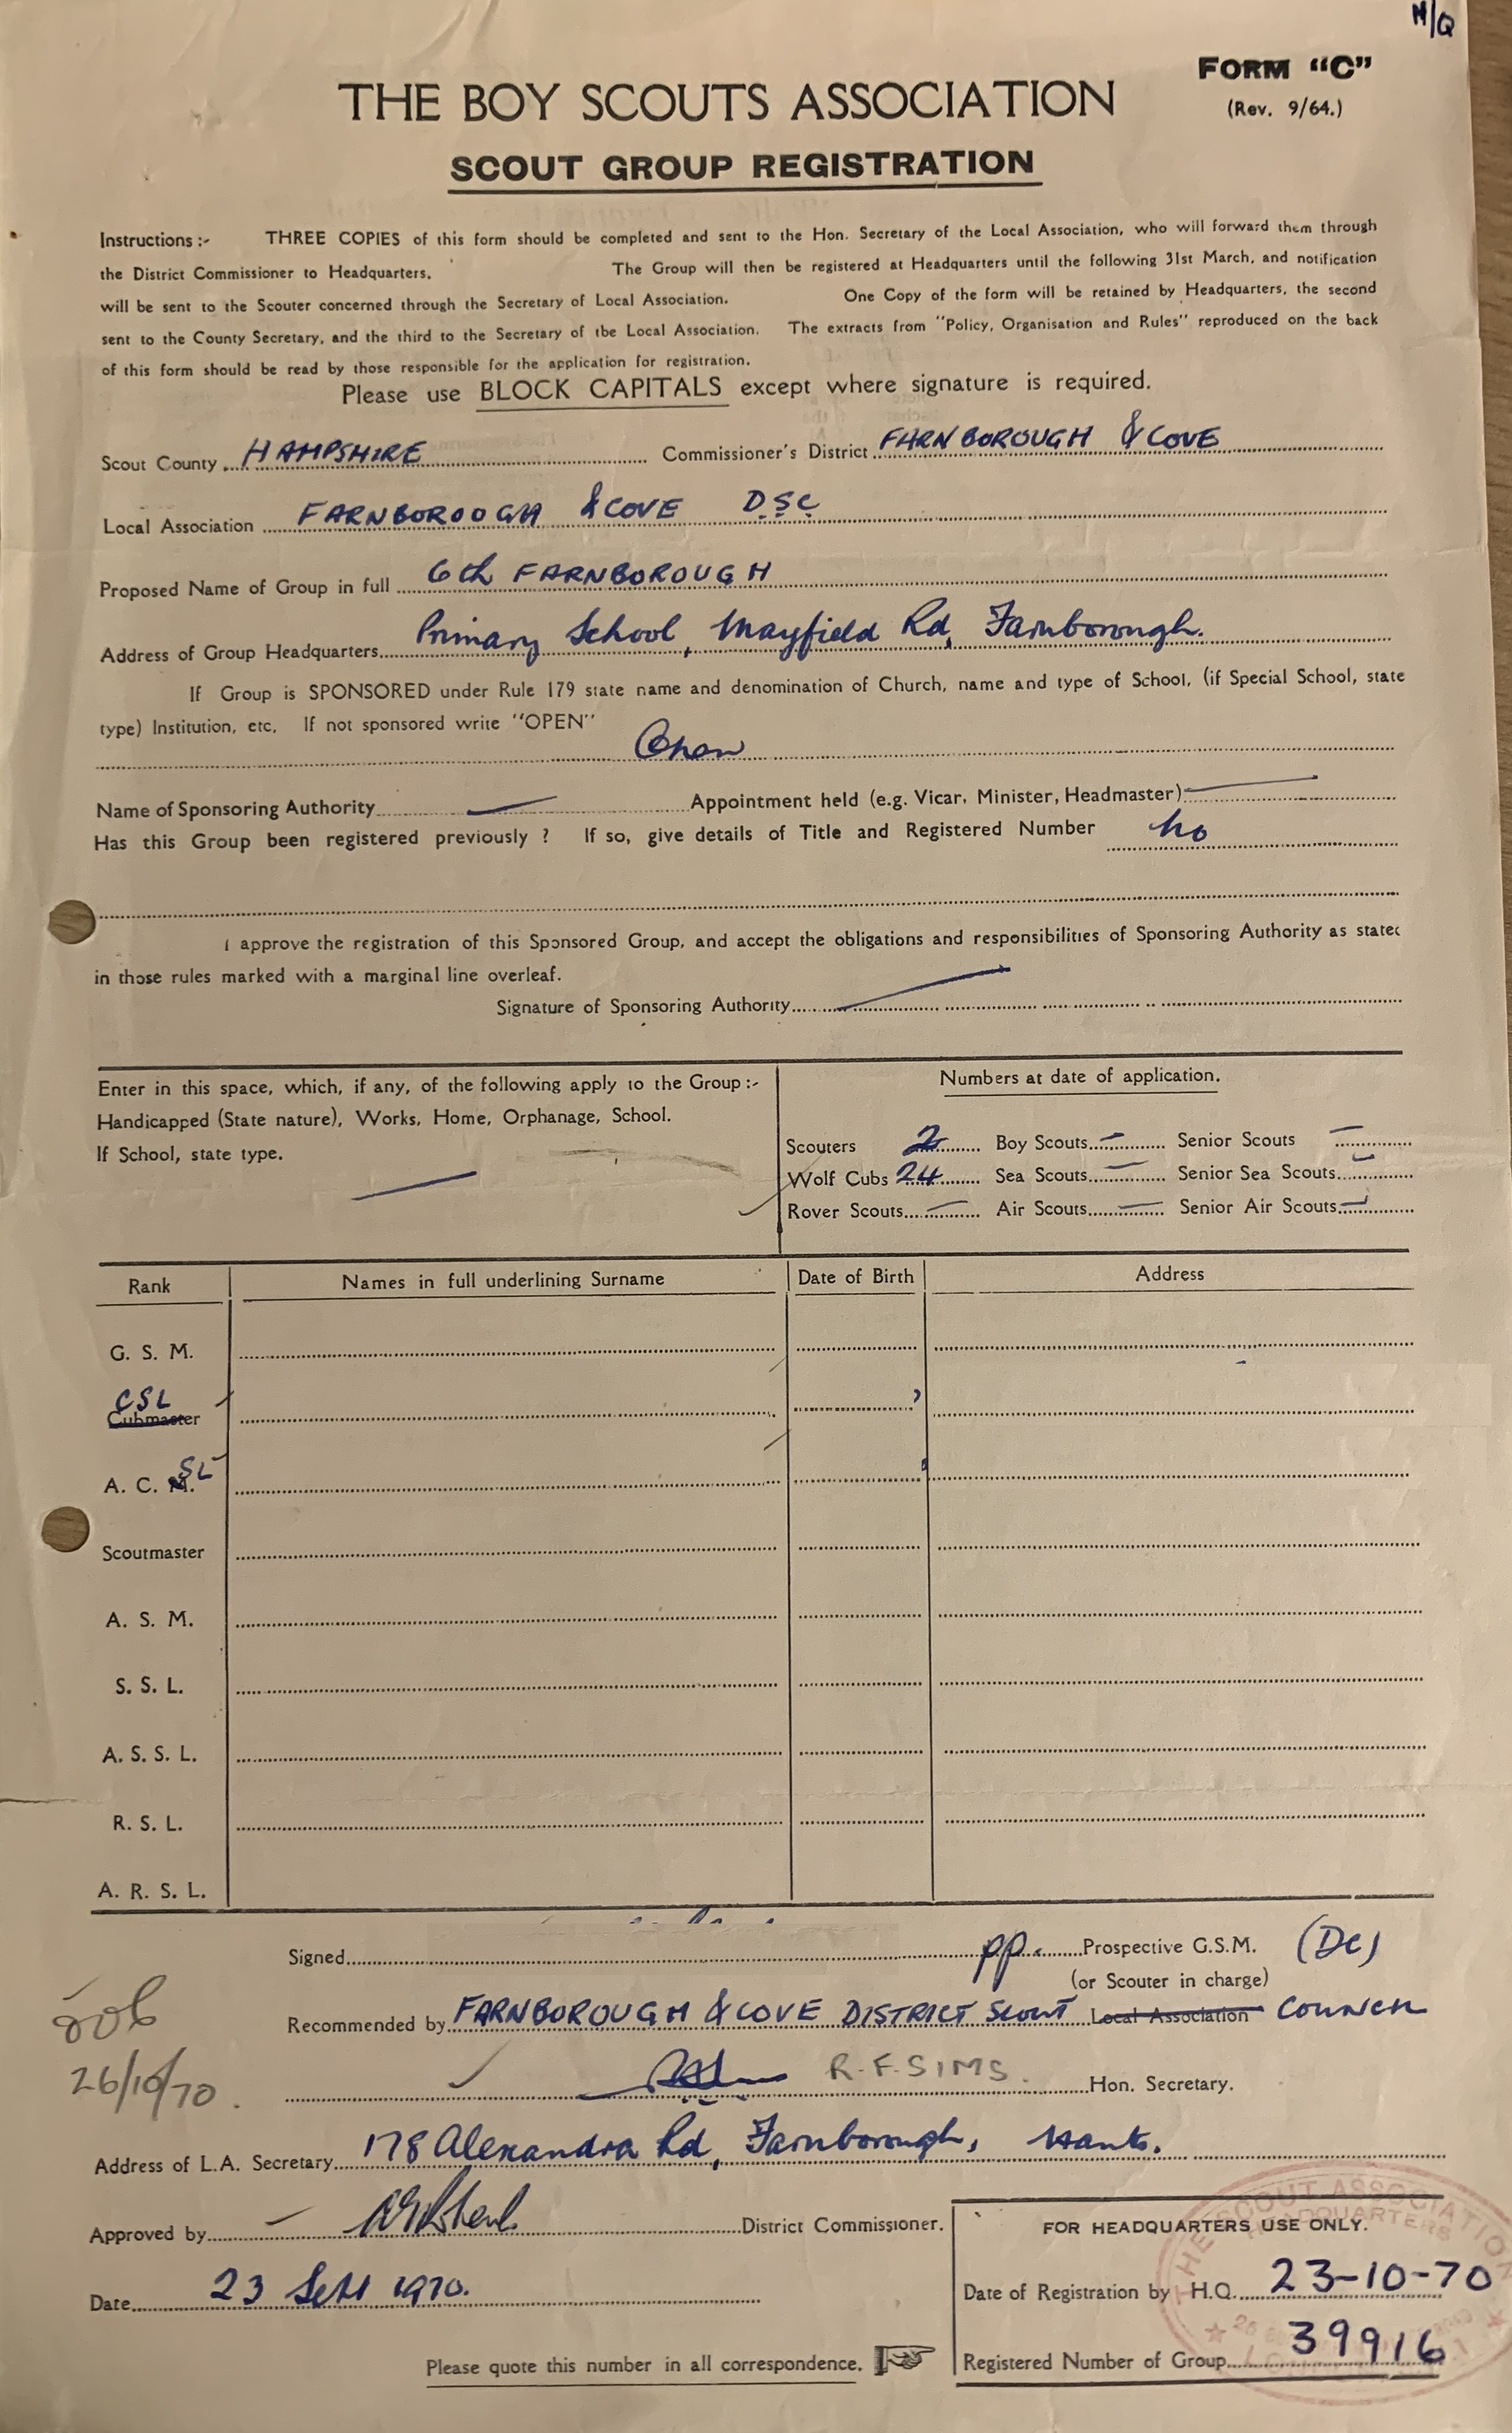 An image of our reconstitution form from 1970 that is stored in the Gilwell Park Scouting Archives